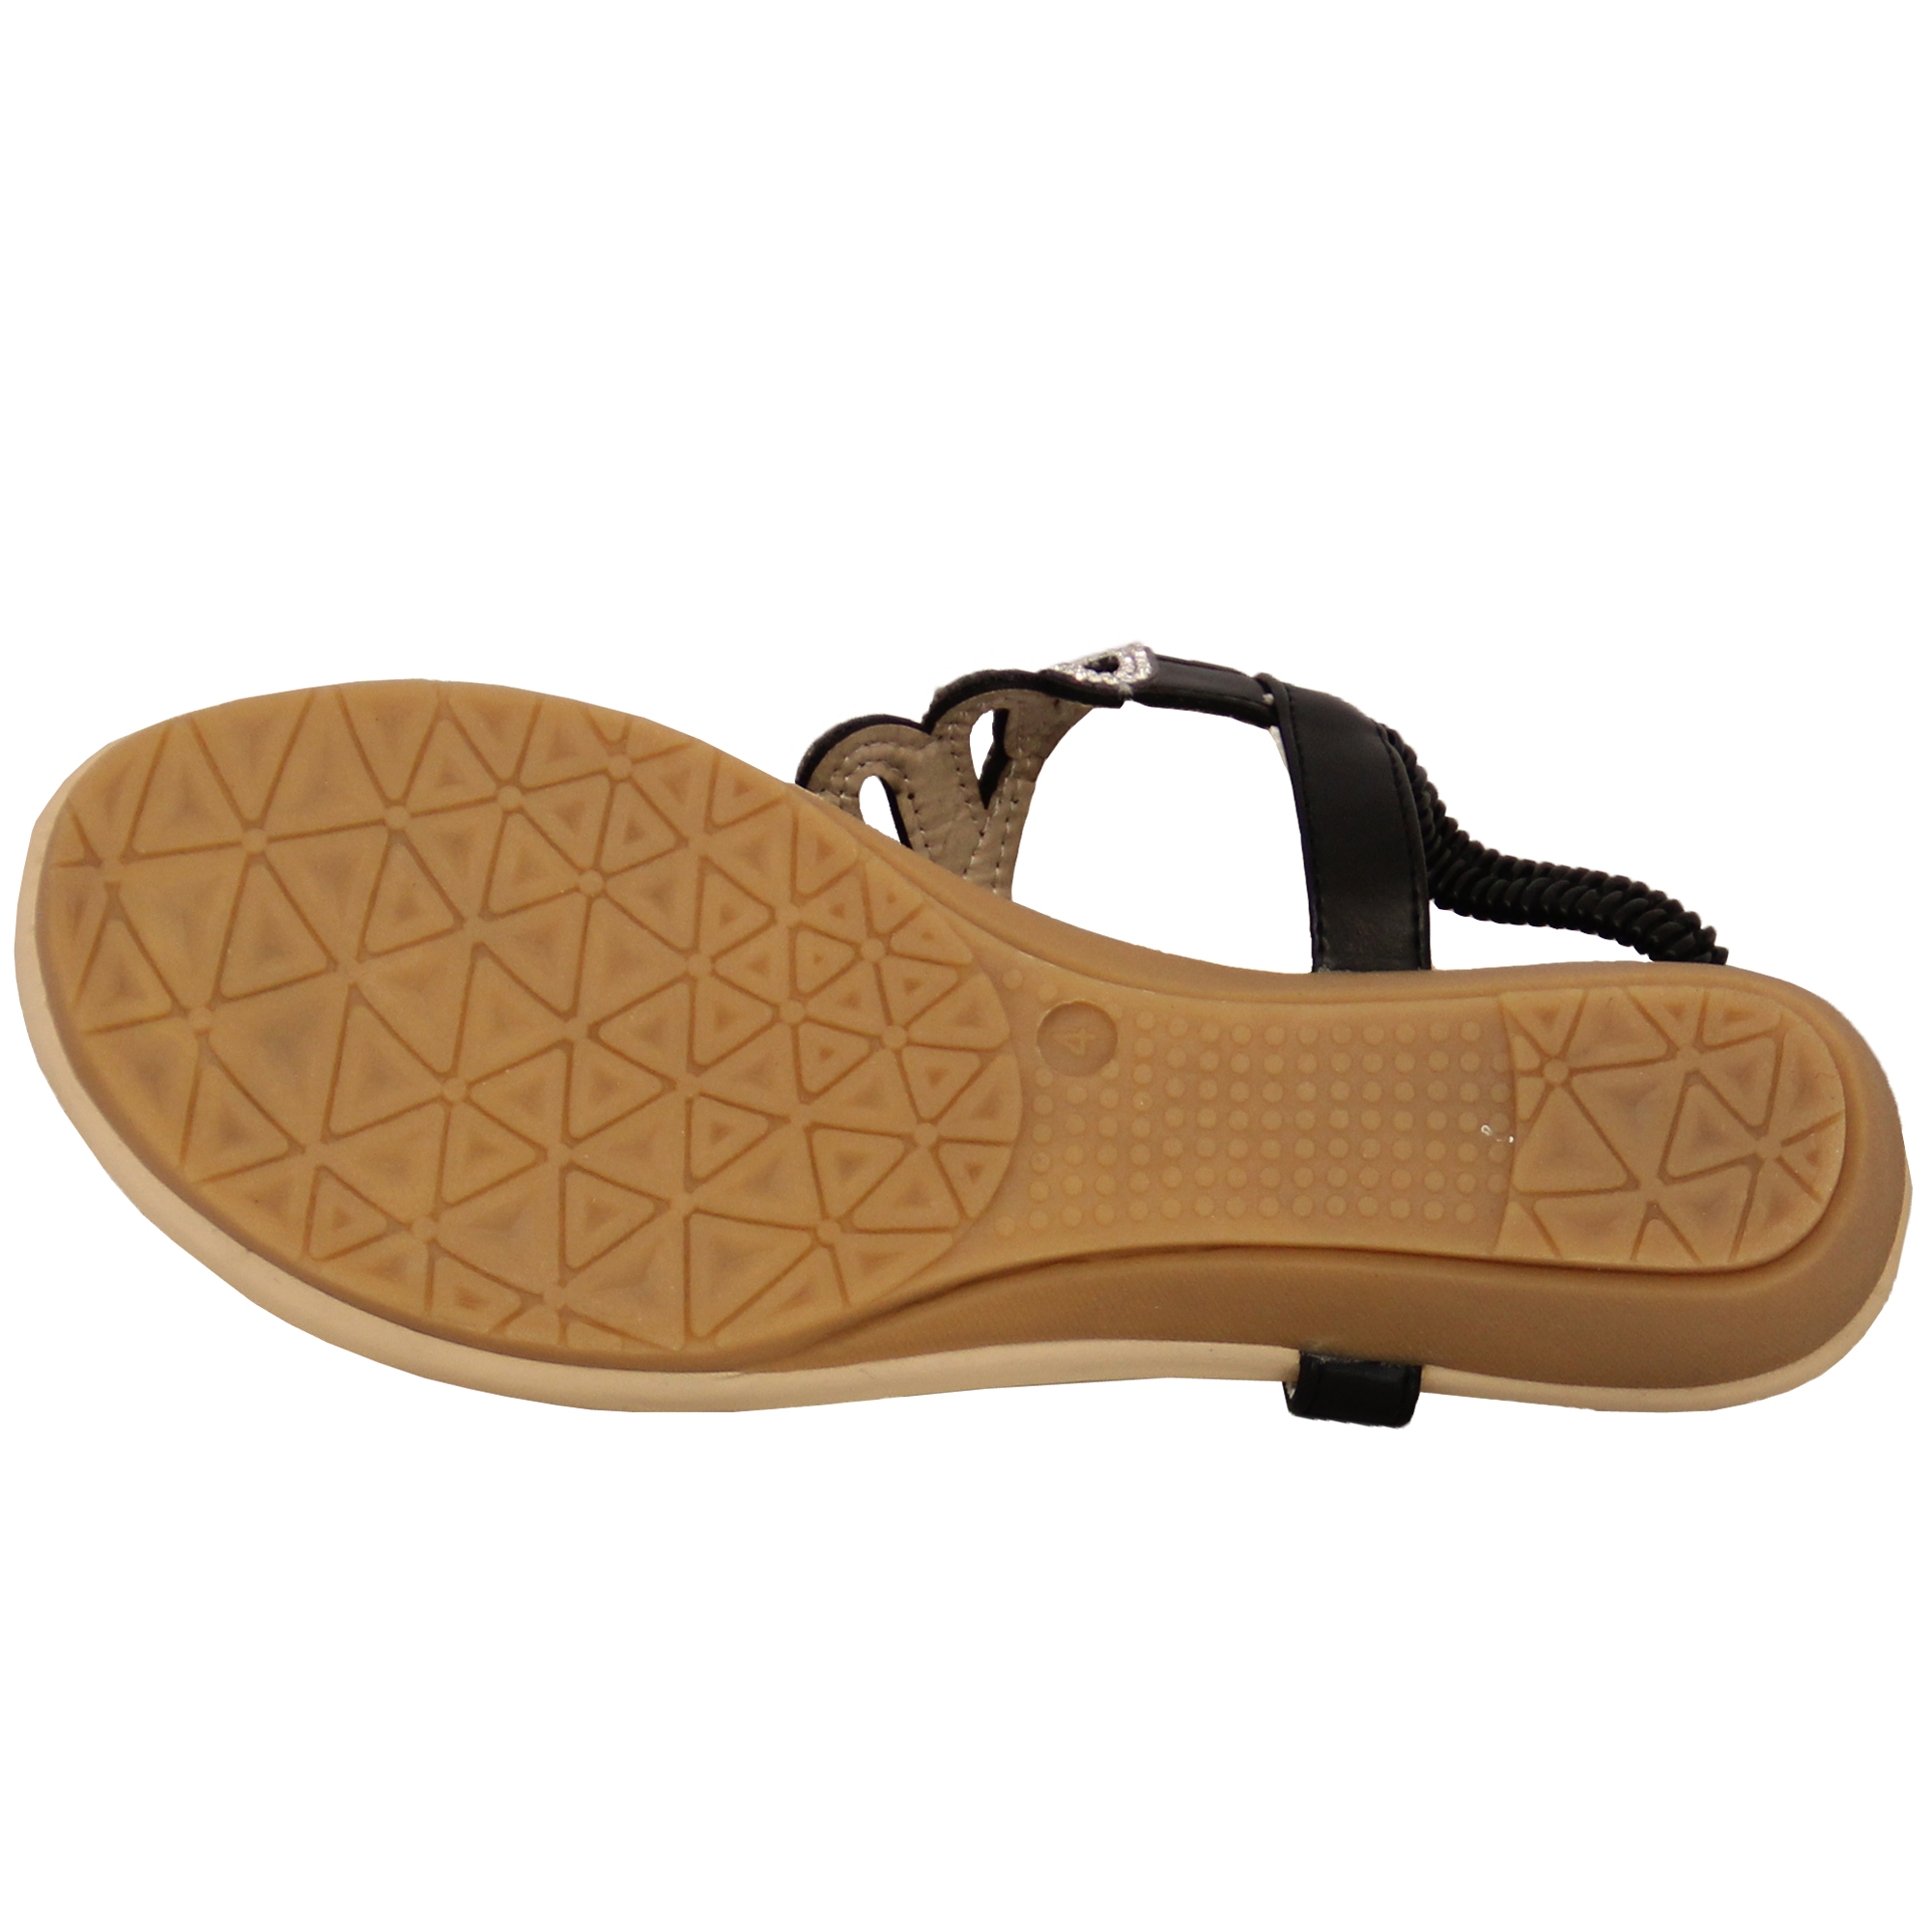 Ladies-Sandals-Kelsi-Womens-Diamante-Slip-On-Toe-Post-Shoes-Casual-Fashion-New thumbnail 12